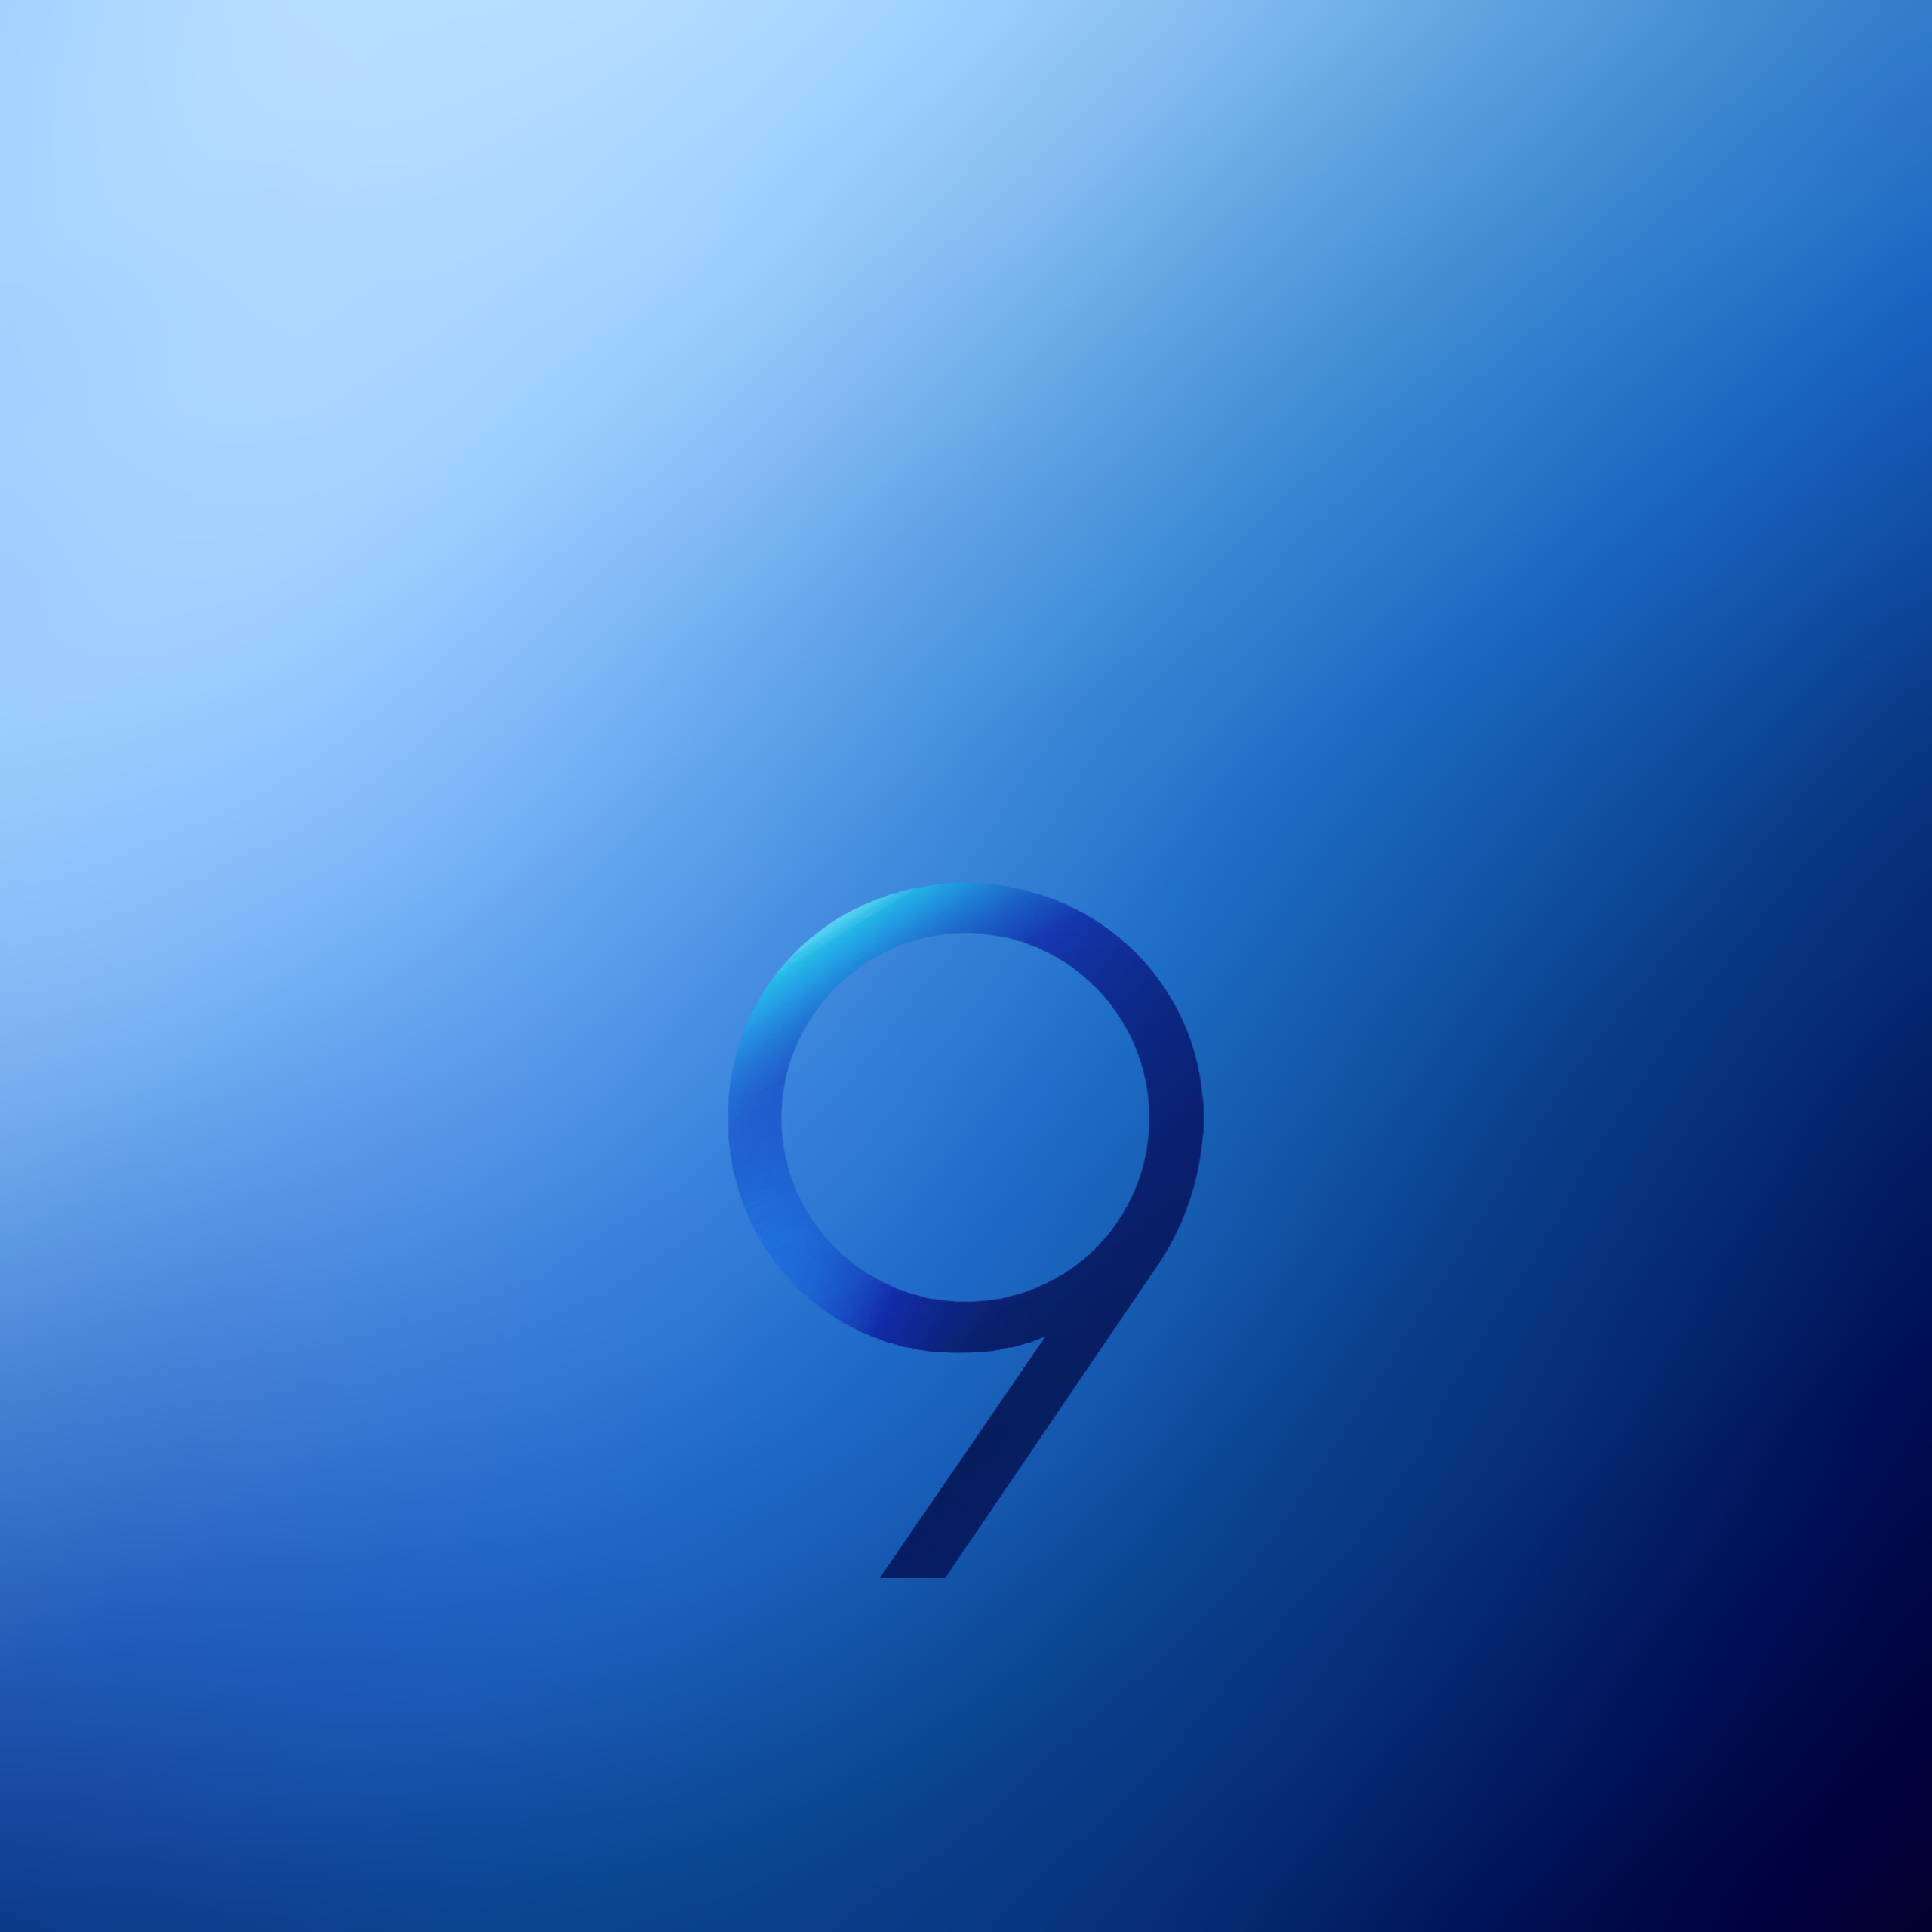 Galaxy S9 Wallpaper 15